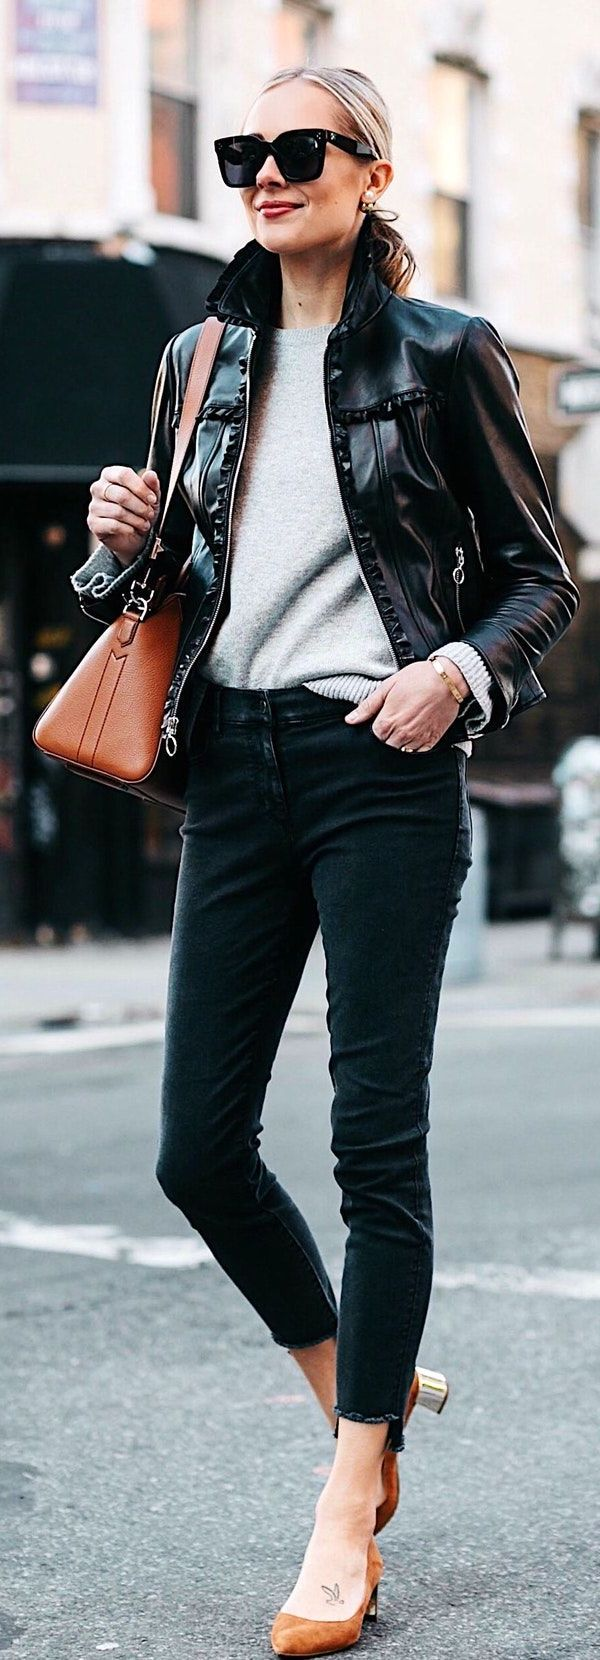 23 Ideas How To Make Jeans Look Cool 2019